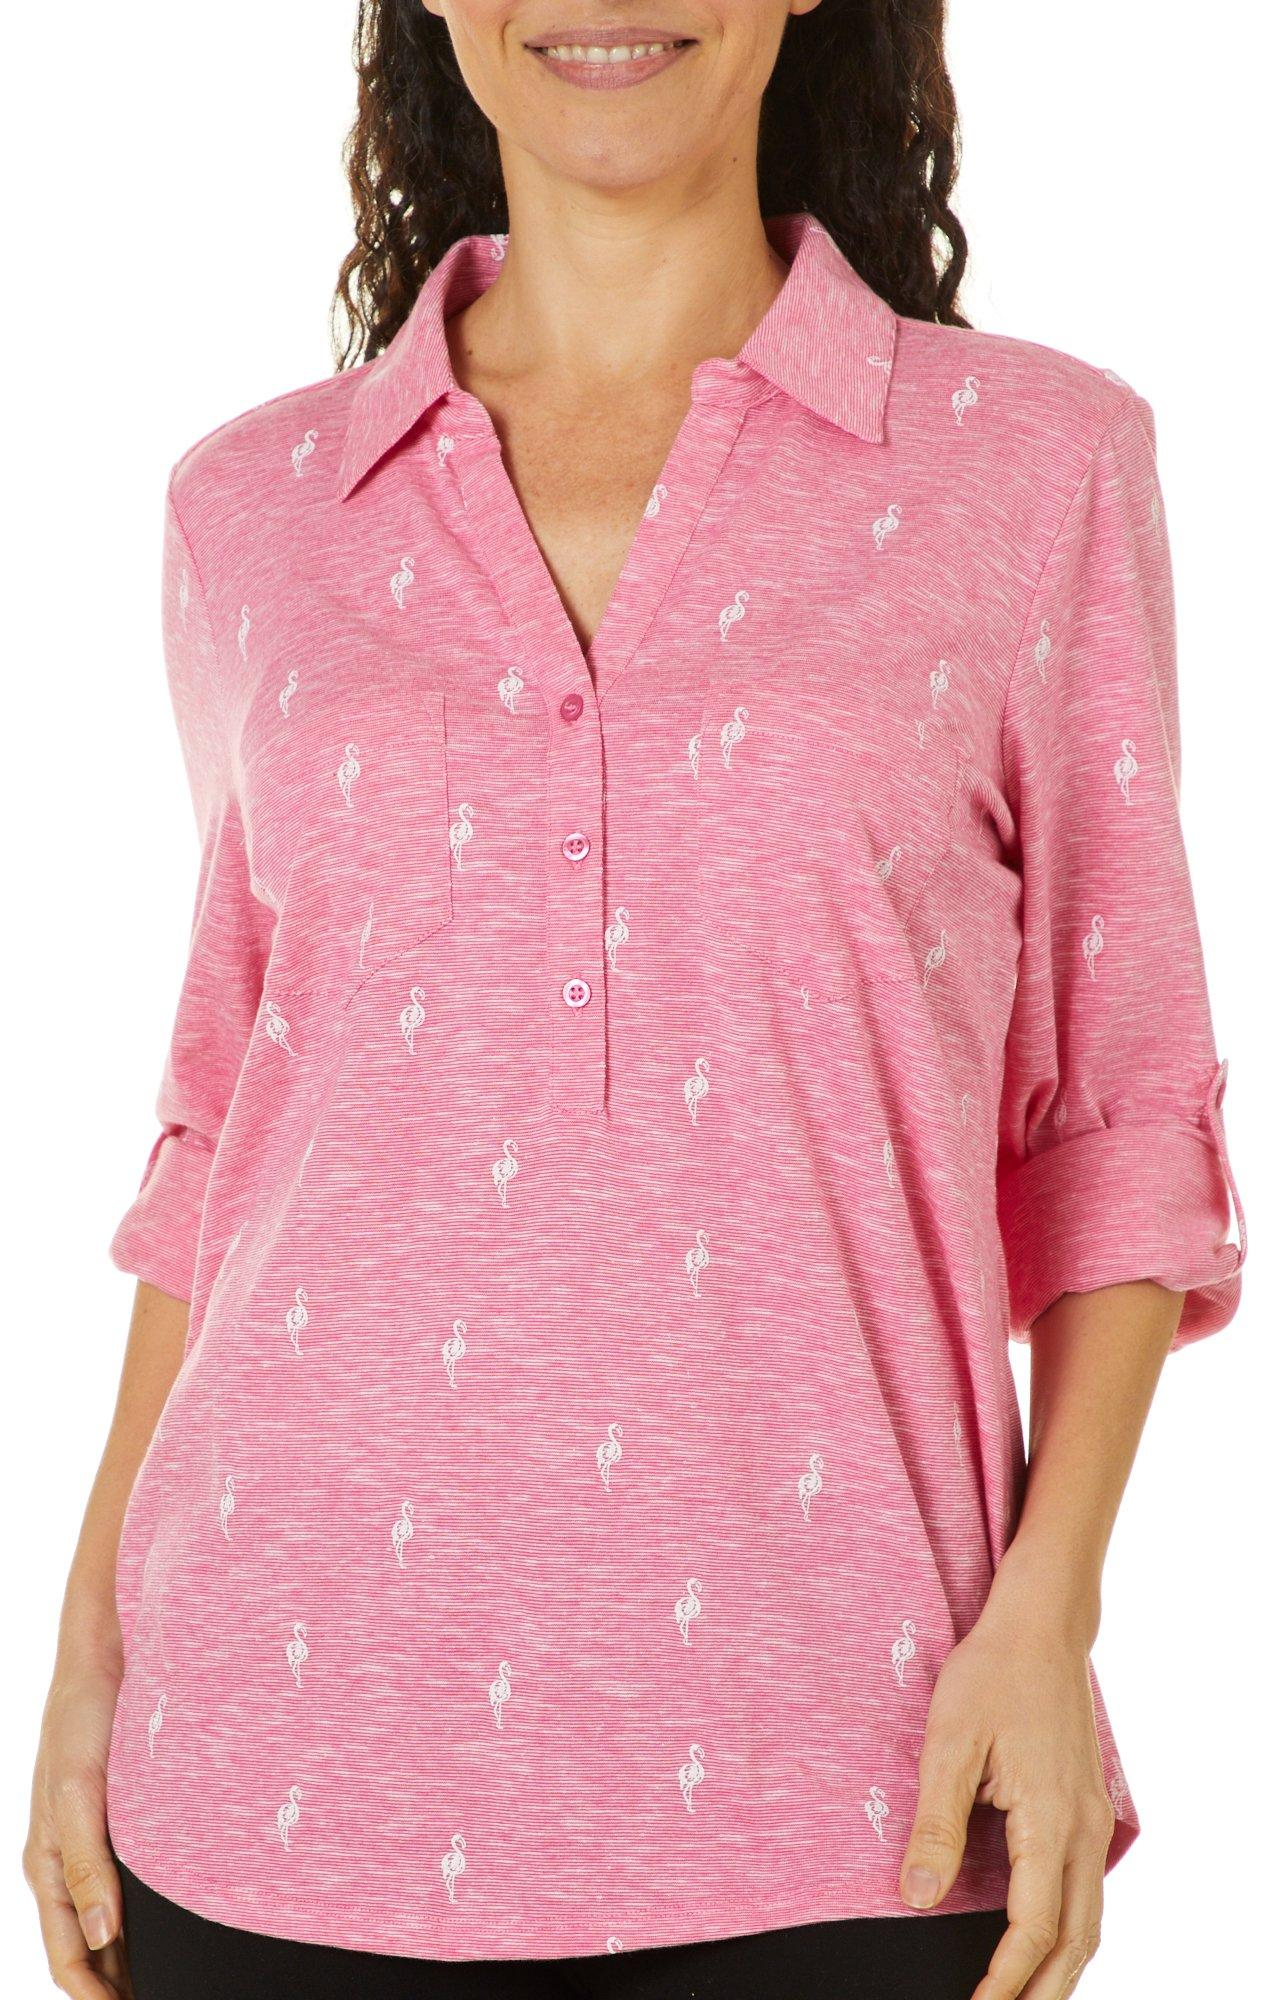 NEXT WOMENS Embellished Cuff Blouse .VARIOUS SIZES.RRP £38.BARGAIN.